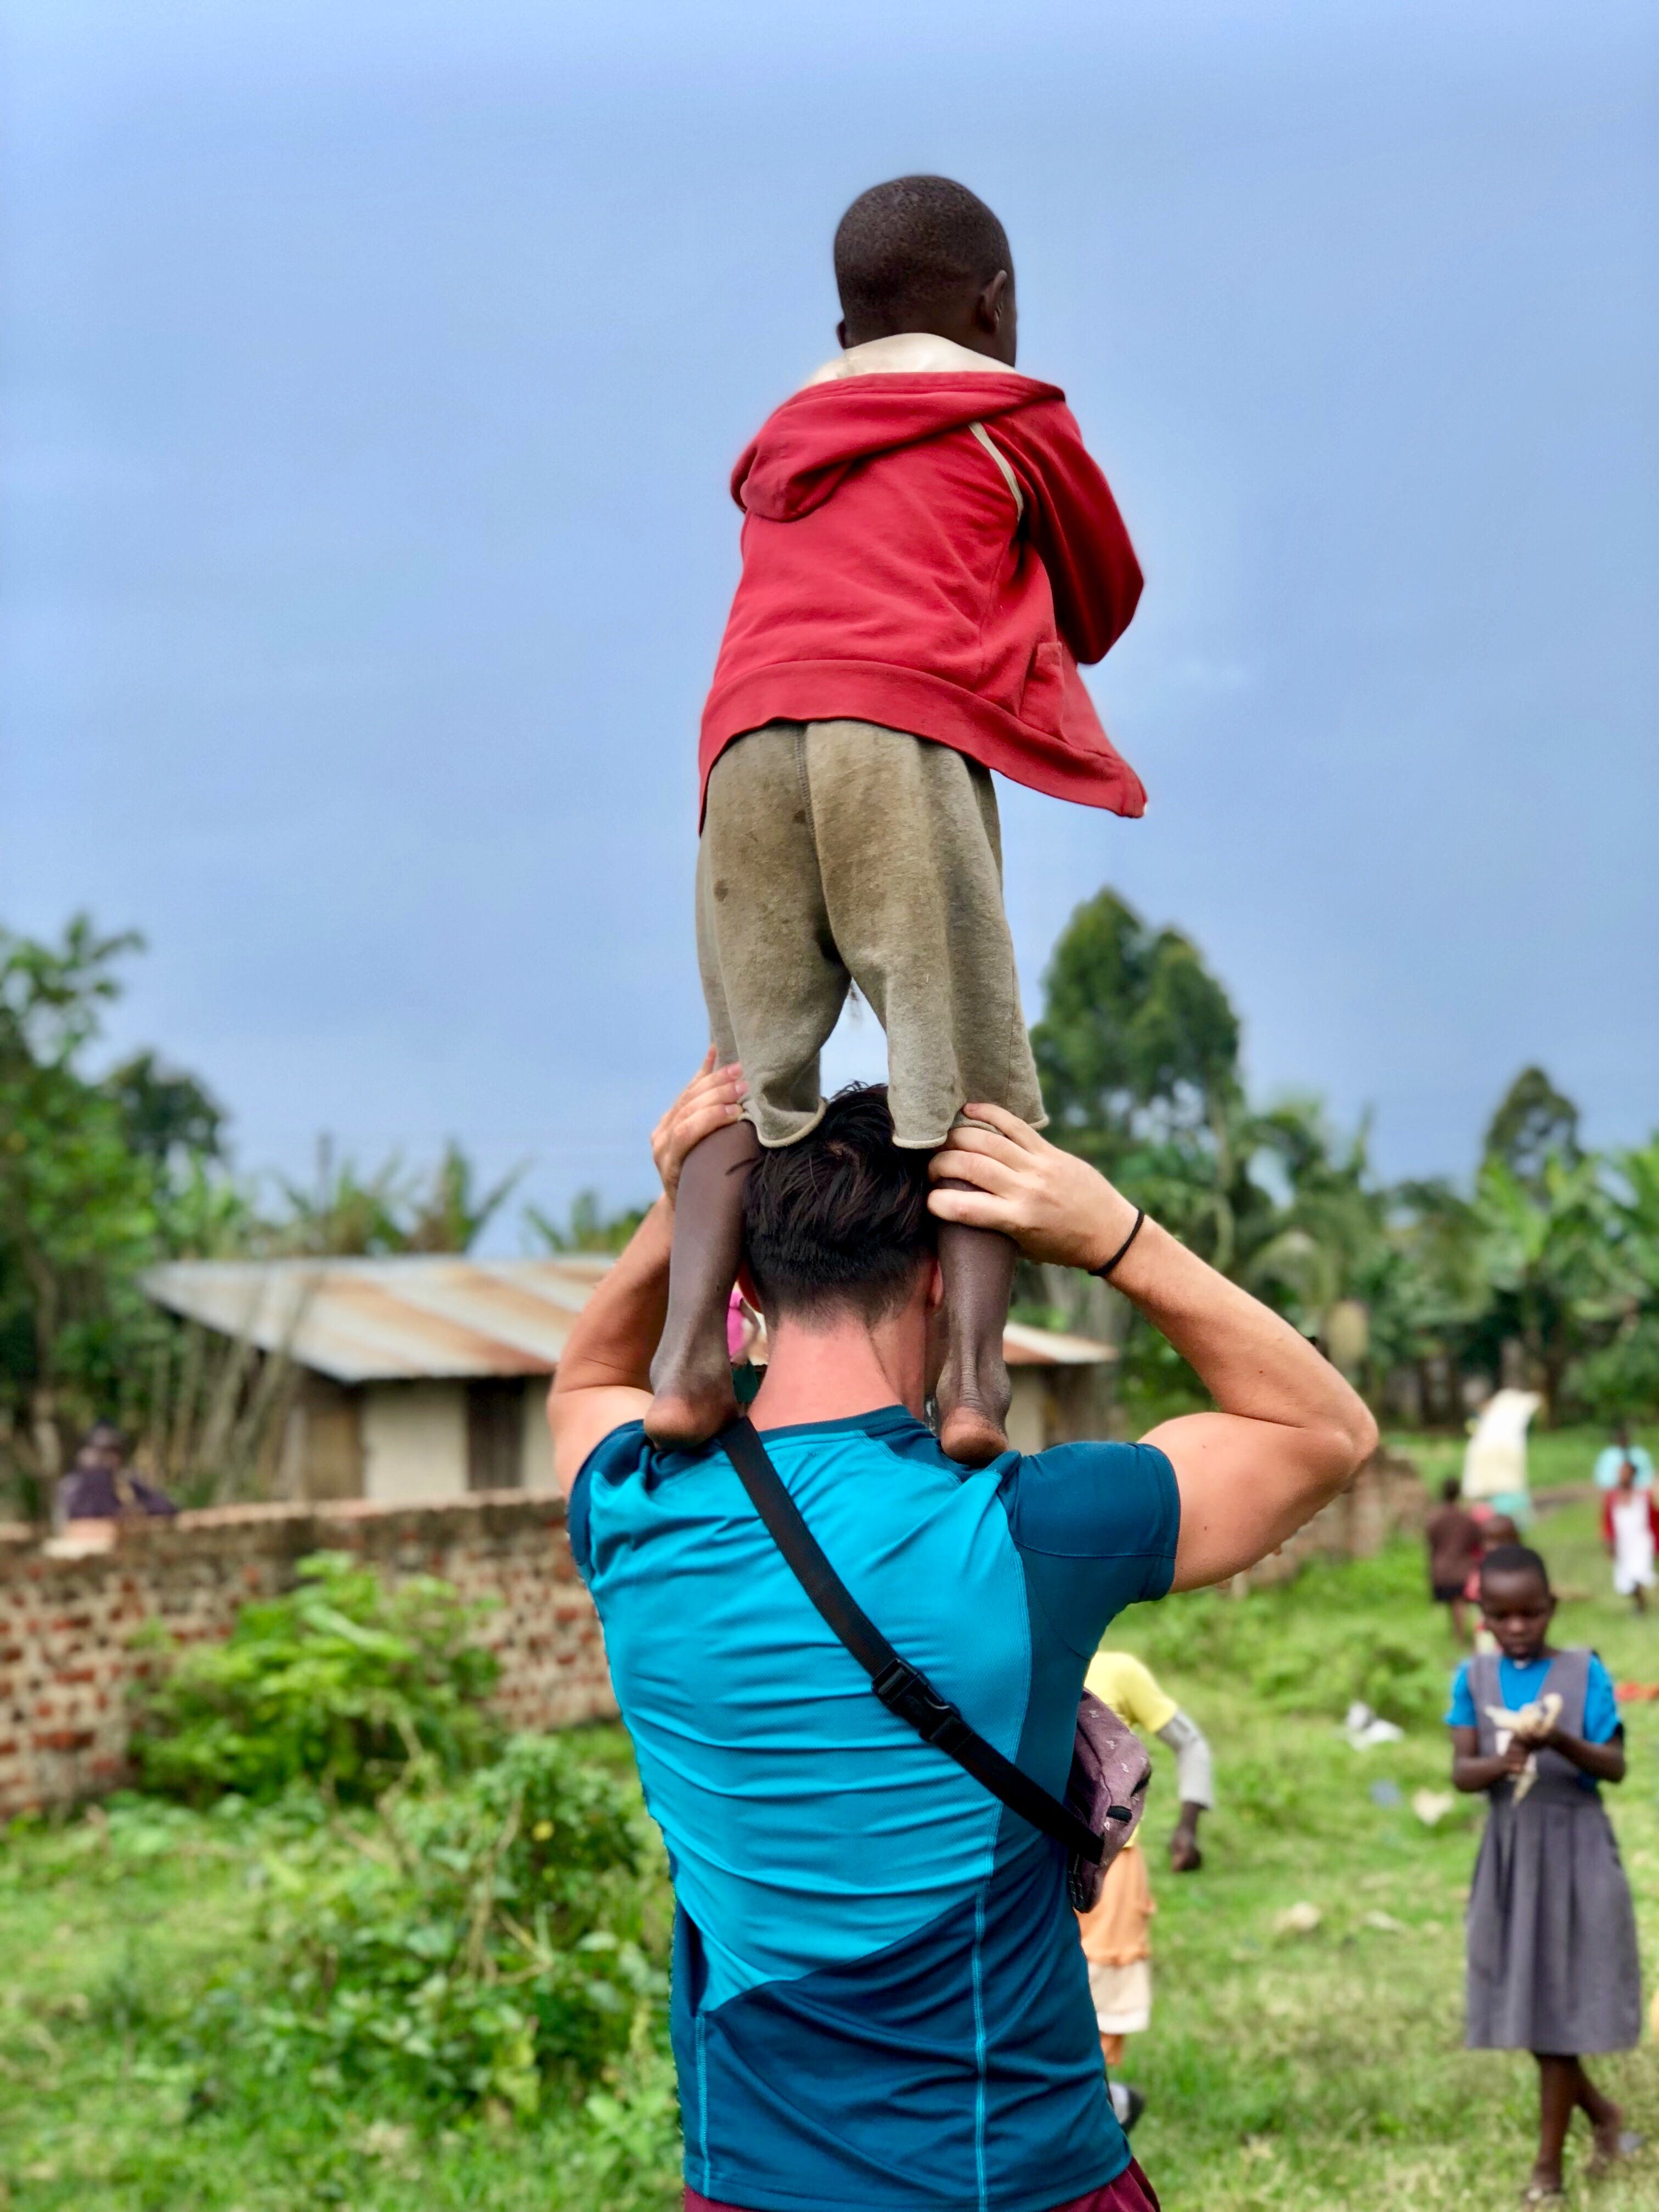 Man Carrying Boy On Shoulders